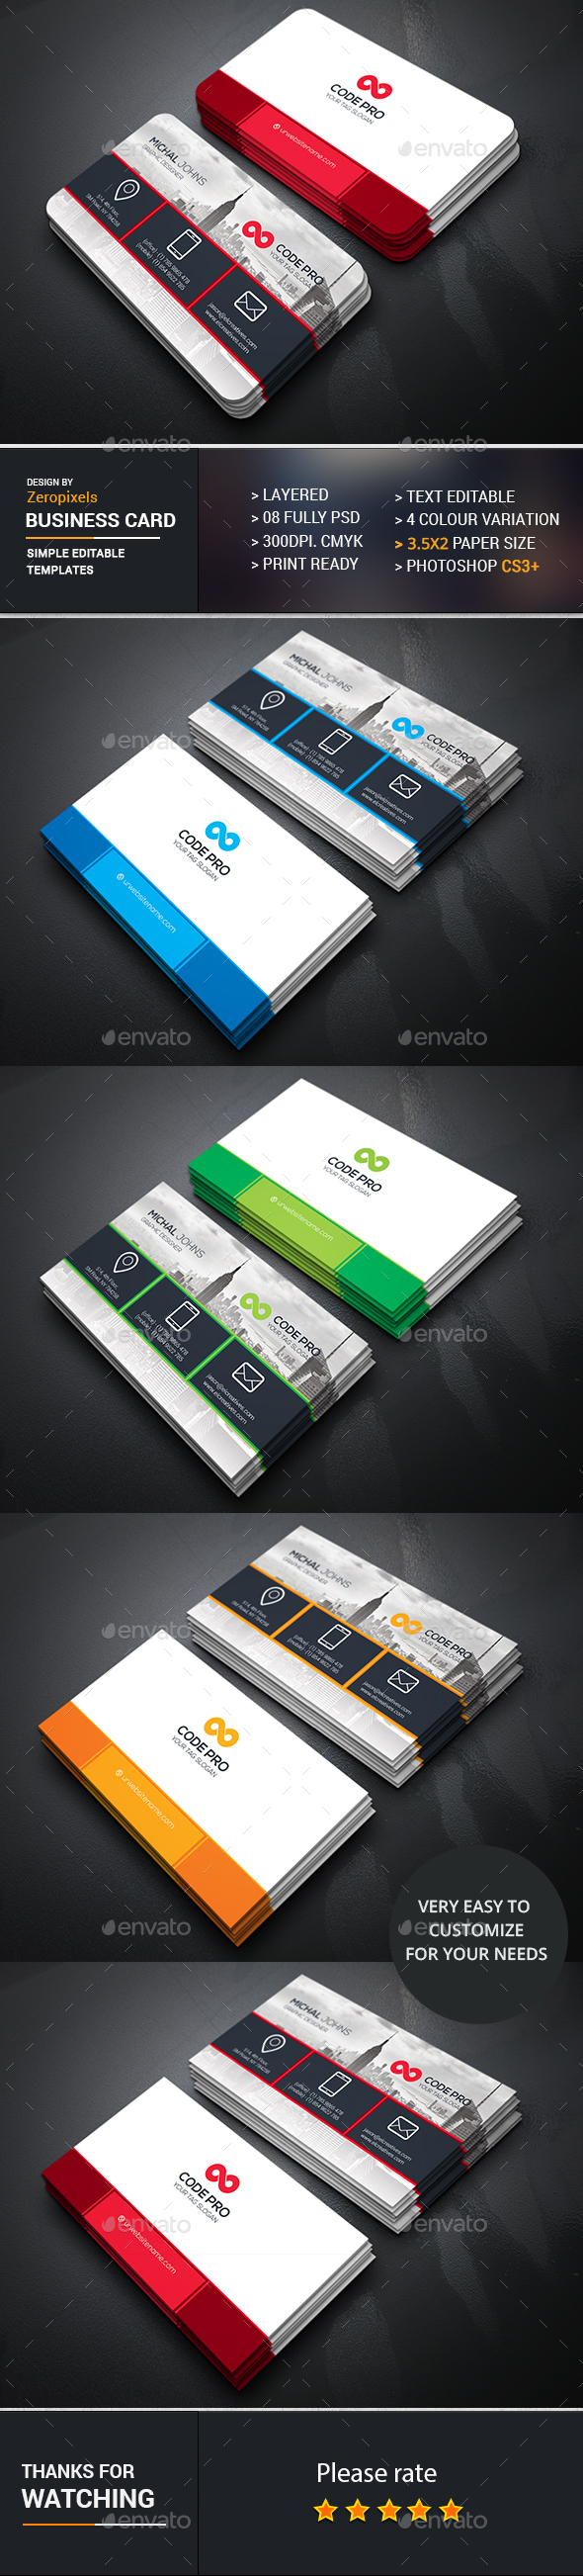 Creative business card template psd download here https creative business card template psd download here httpsgraphicriver reheart Gallery